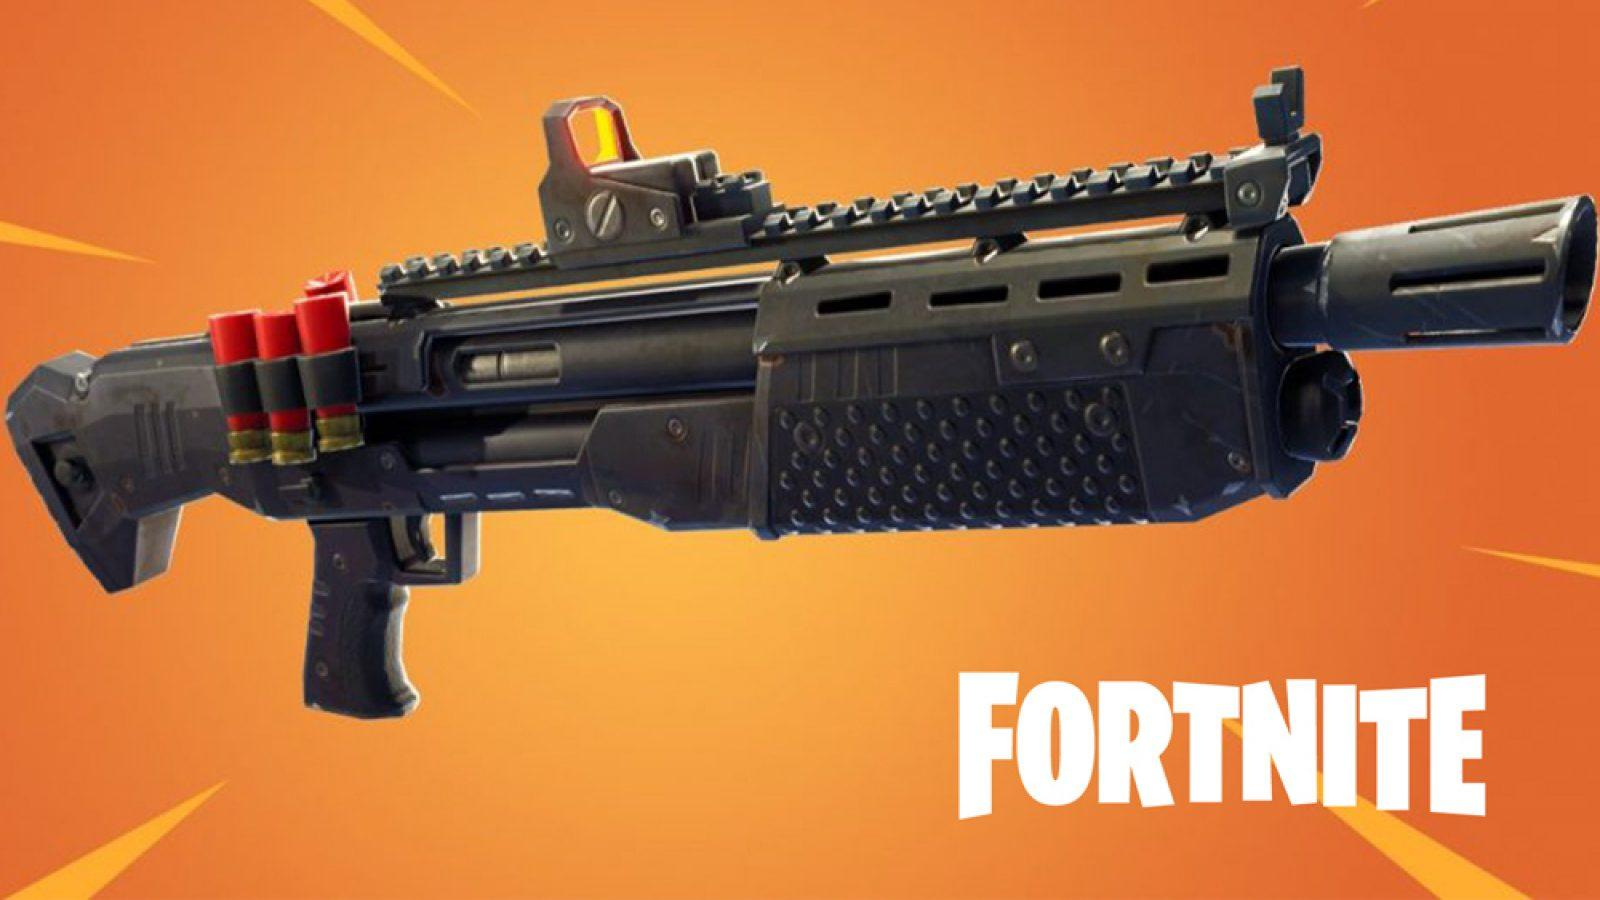 Fortnite players have discovered a serious problem with Heavy